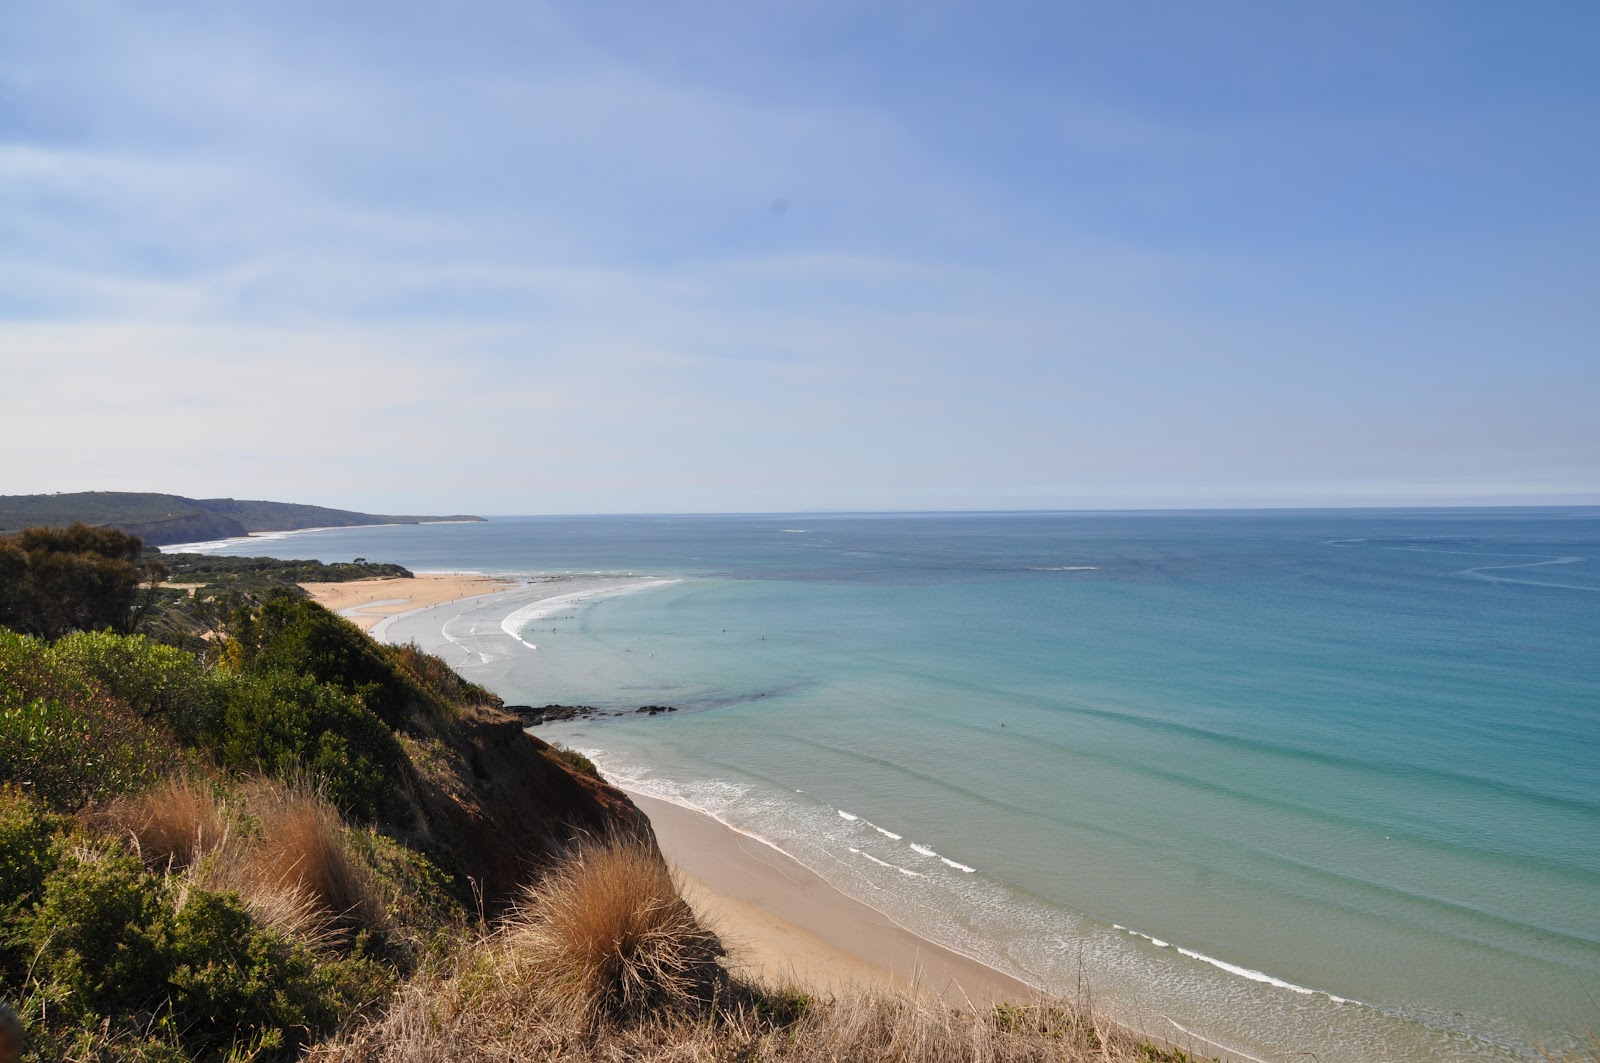 torquay long sandy beach bright blue calm ocean natural beauty of australia. See it from the Great Ocean road during this Australia road trip itinerary around Victoria.